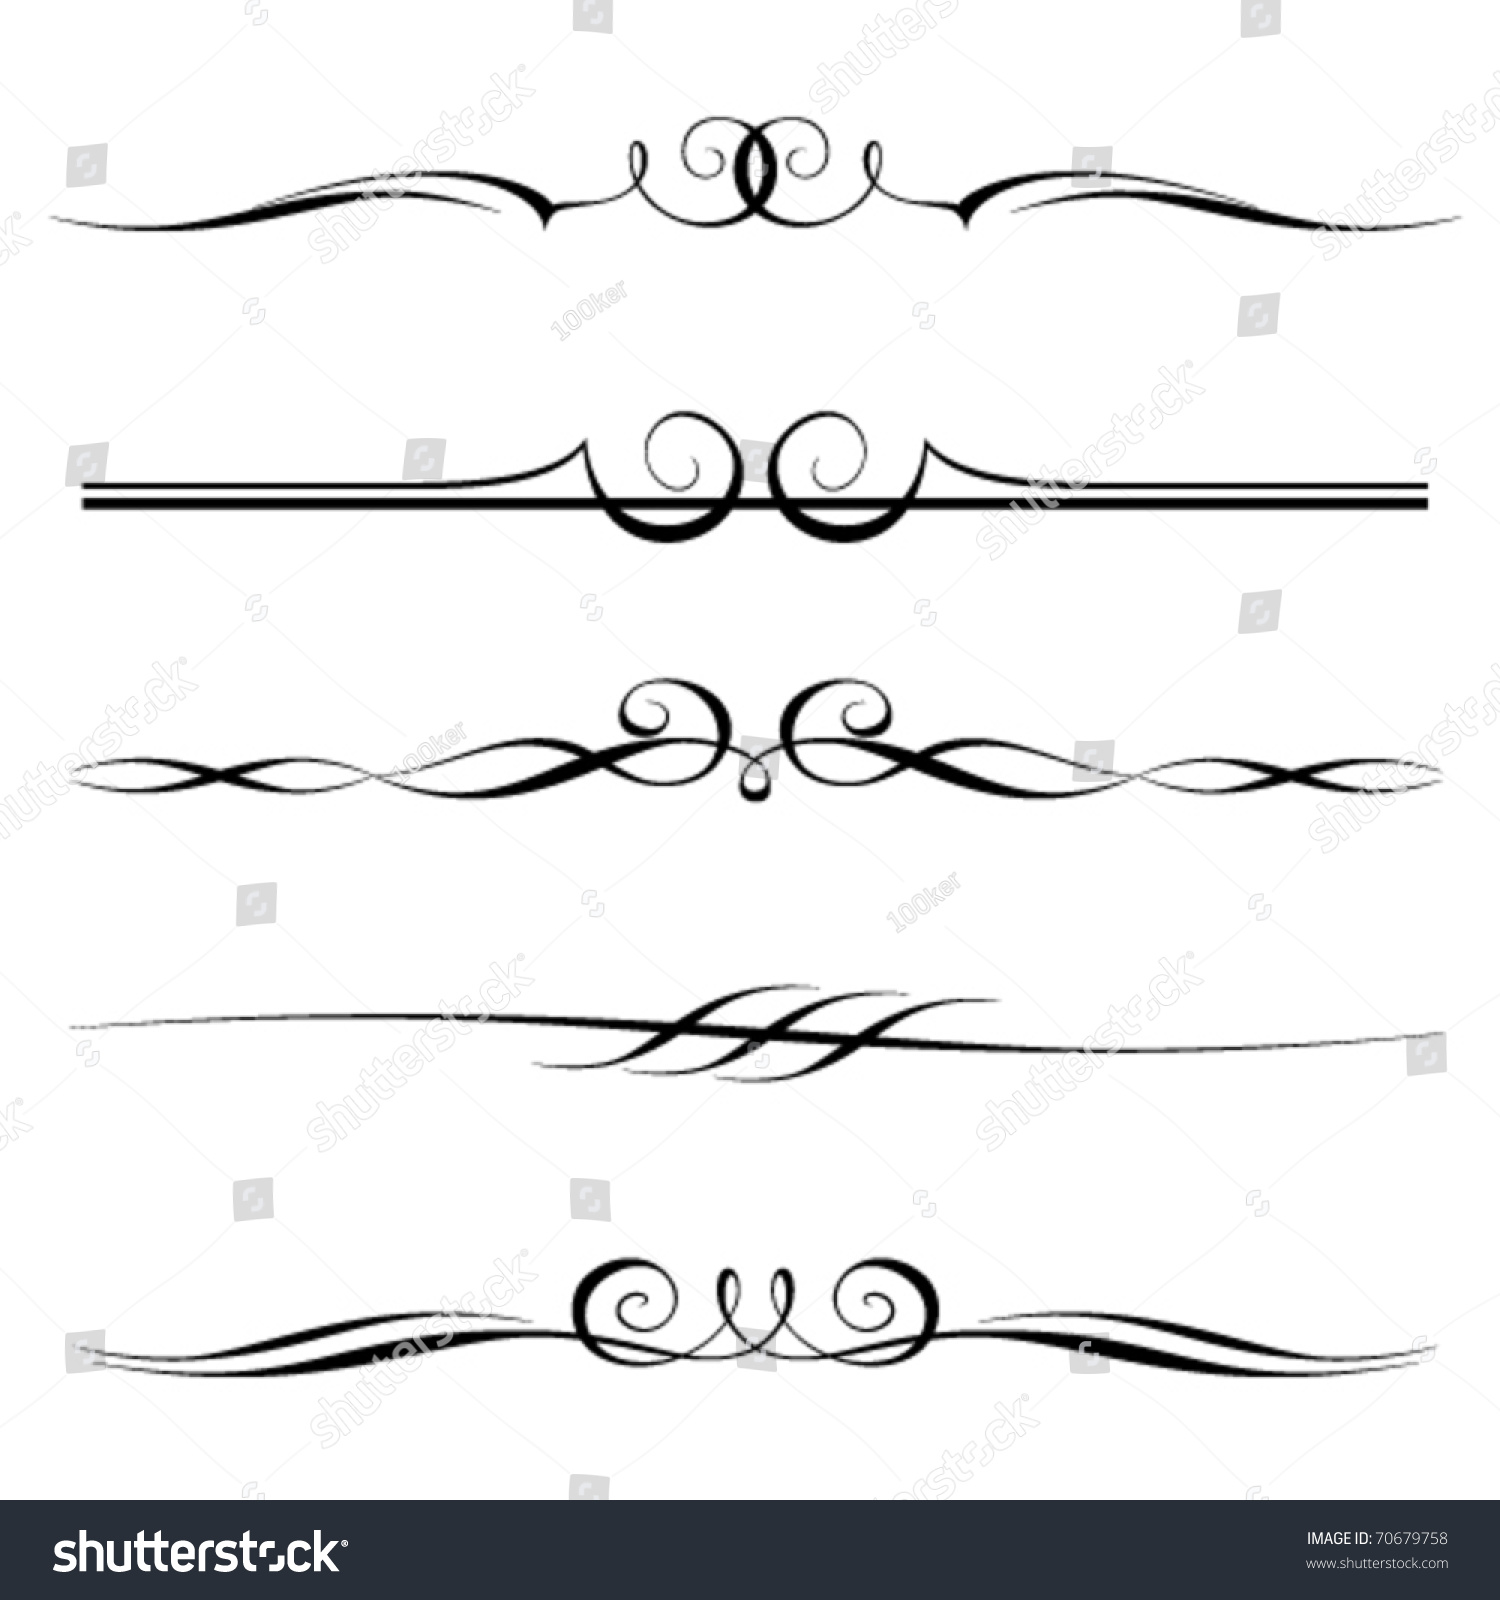 Basic Design Line : Vector set decorative elements border page stock